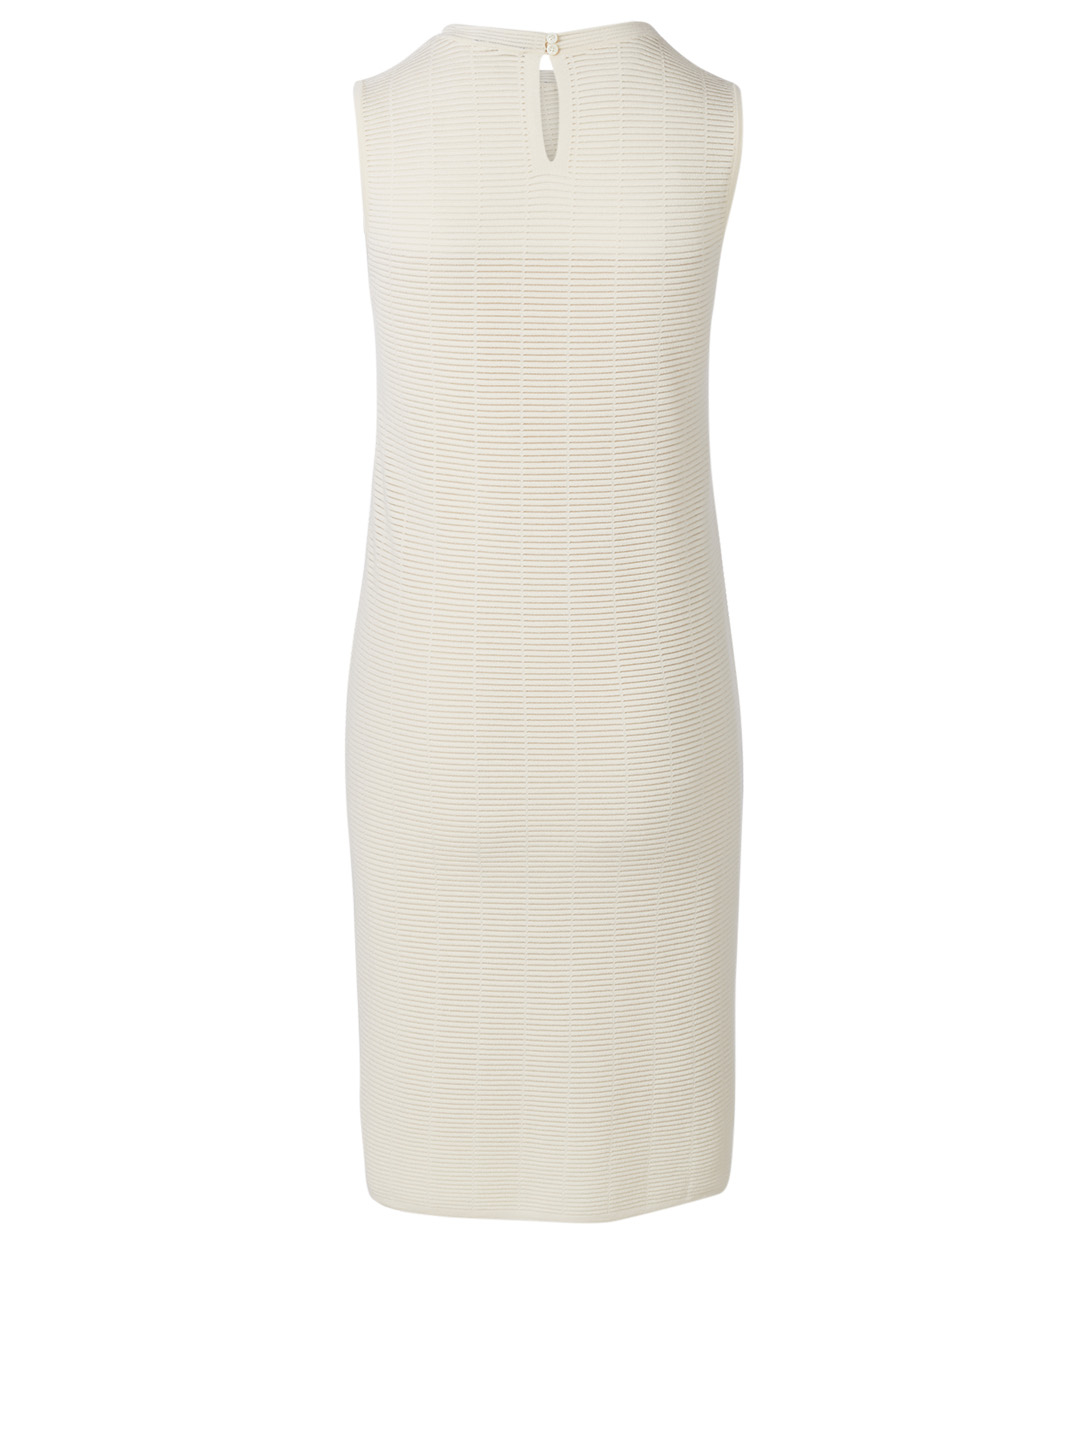 AKRIS Wool And Silk Sleeveless Dress Women's White